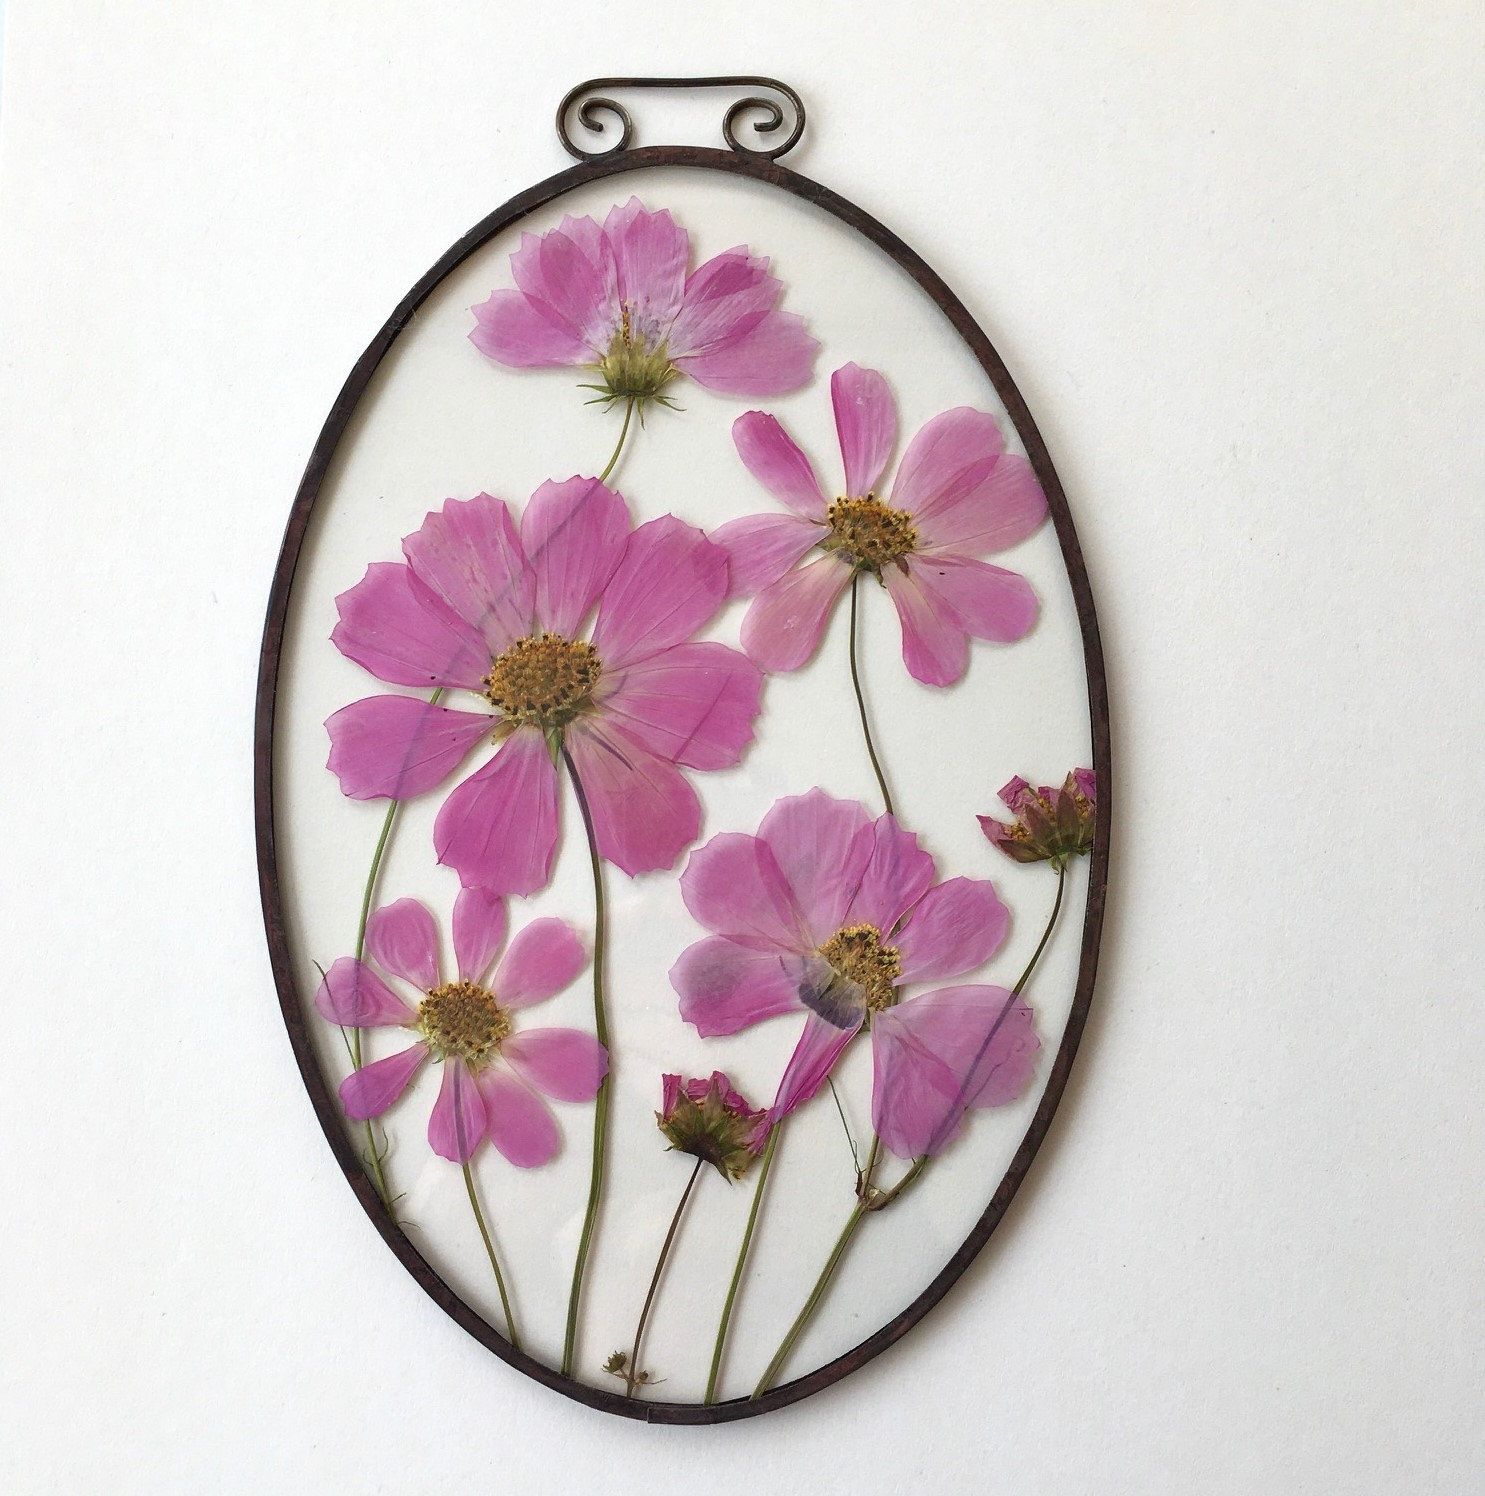 Rustic floral frame;Remarkable pressed Cosmos in oval